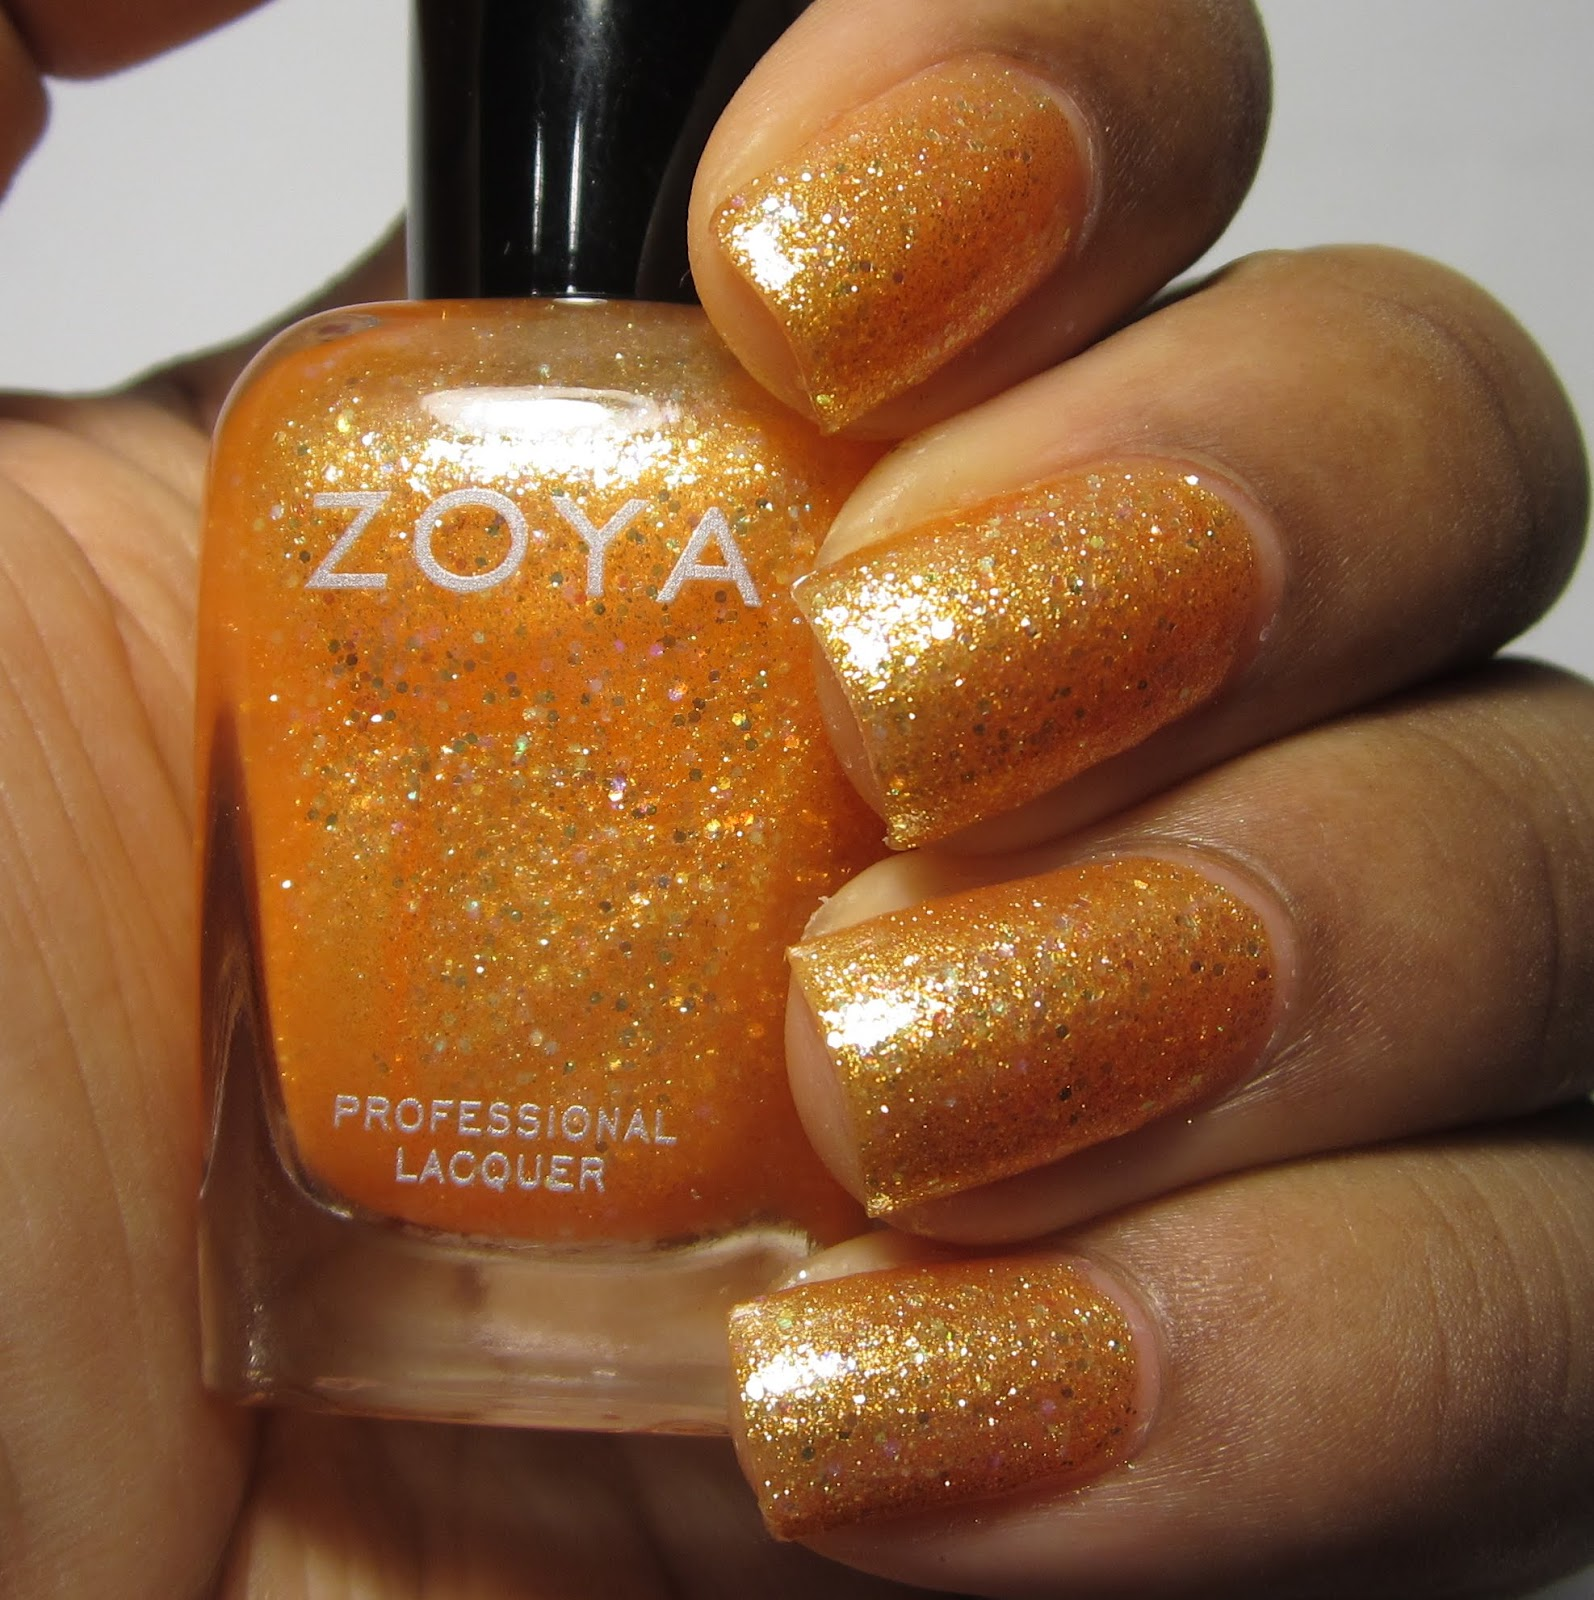 Zoya Alma Bubbly Collection orange nail polish swatch